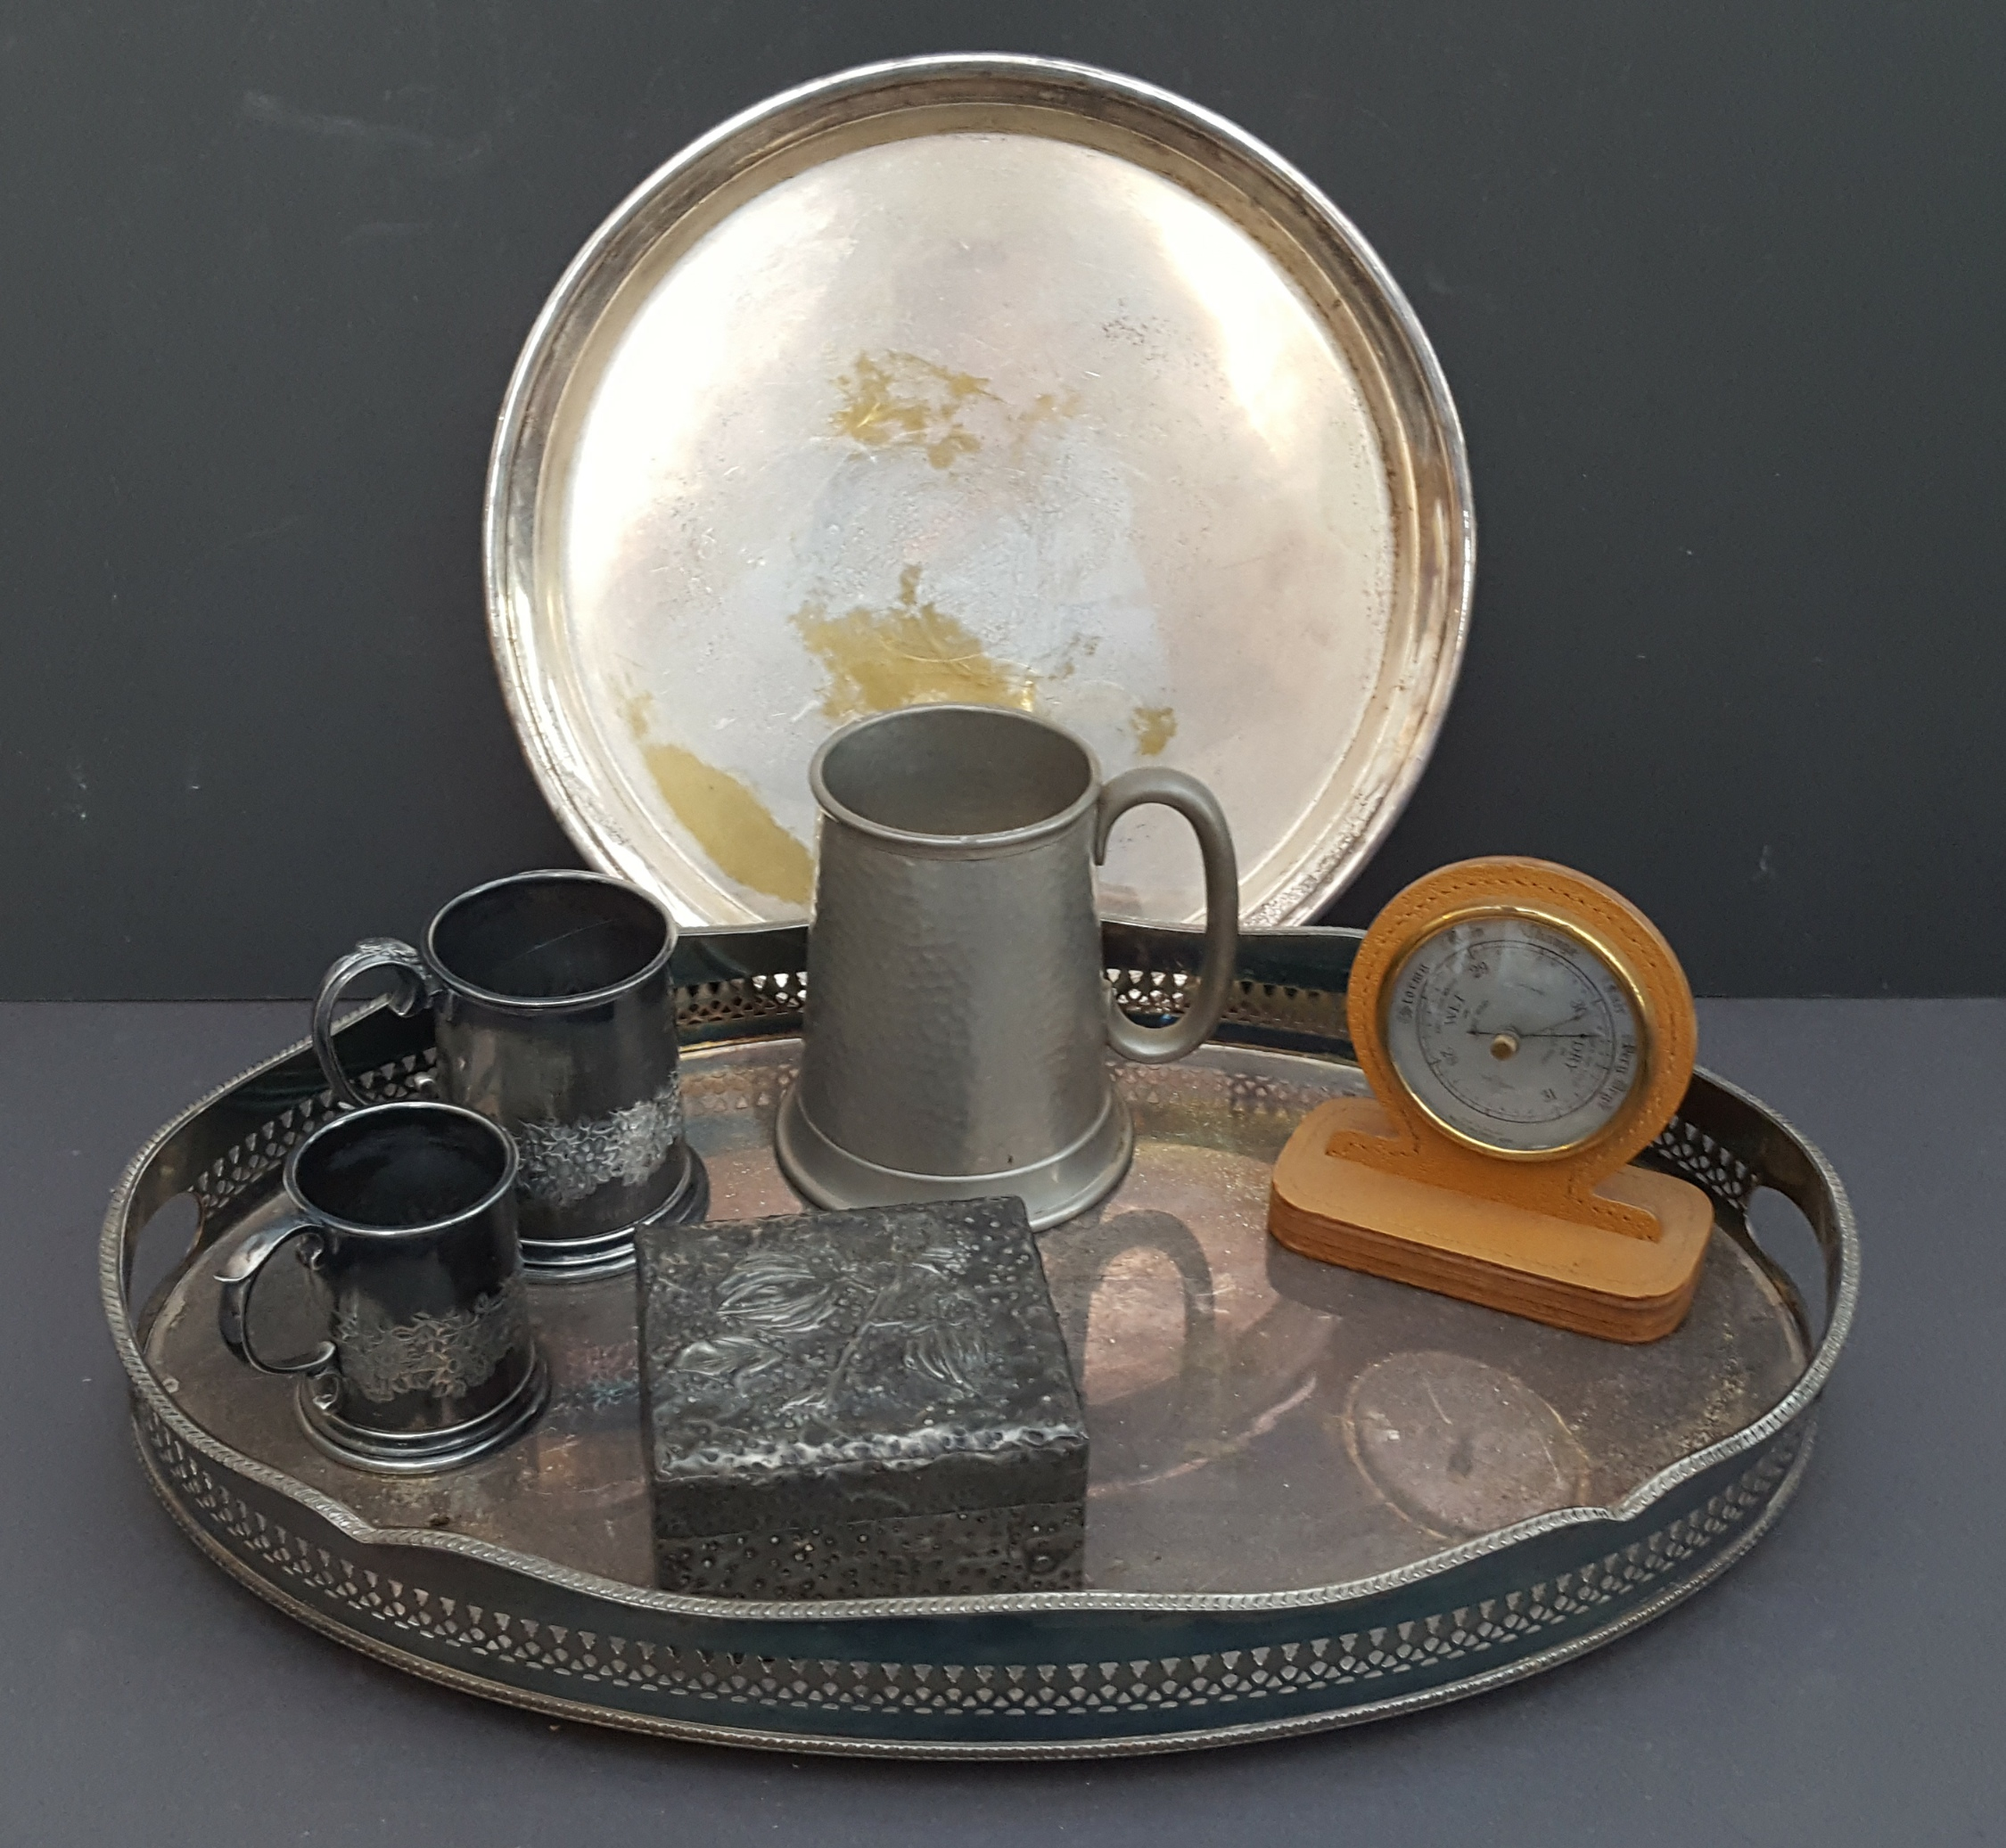 Lot 44 - Antique Vintage Tray of Plated Ware Pewter Ware & Travel Barometer.